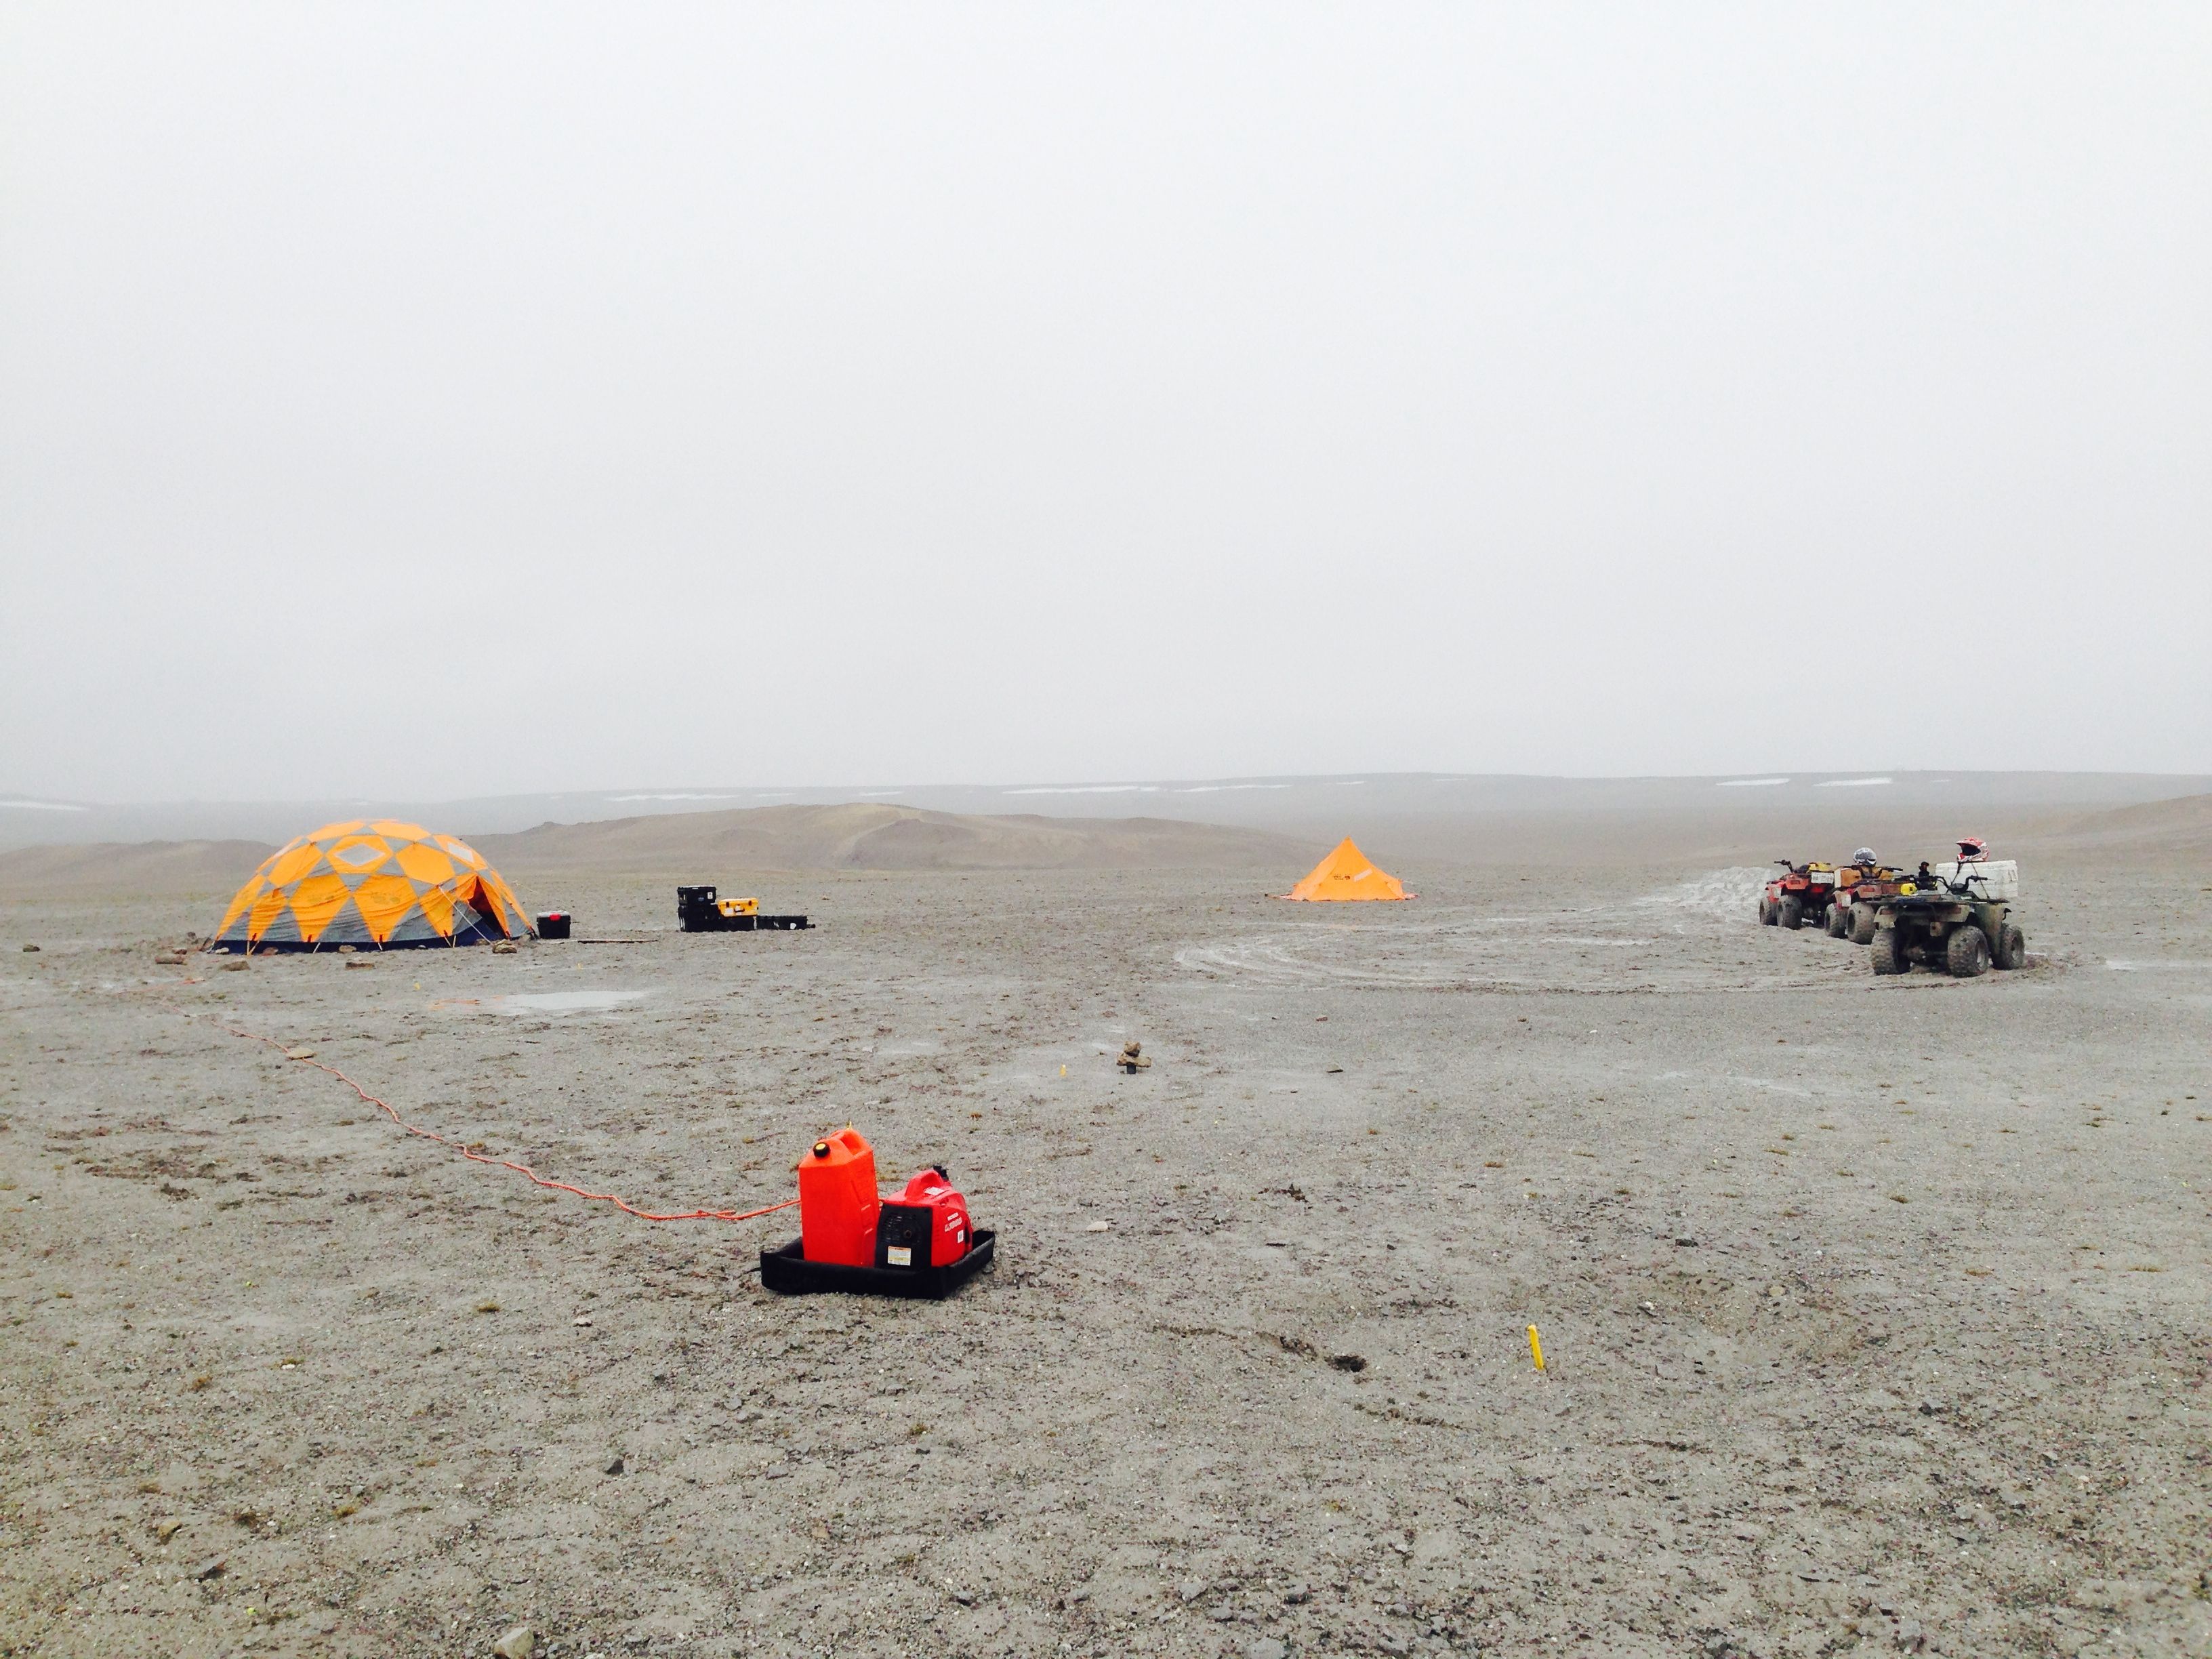 """Drill and robotic test camp inside Haughton Crater. """"Drill Hill""""'s impact breccia and permafrost make it an excellent textural analog for Mars drilling tests."""